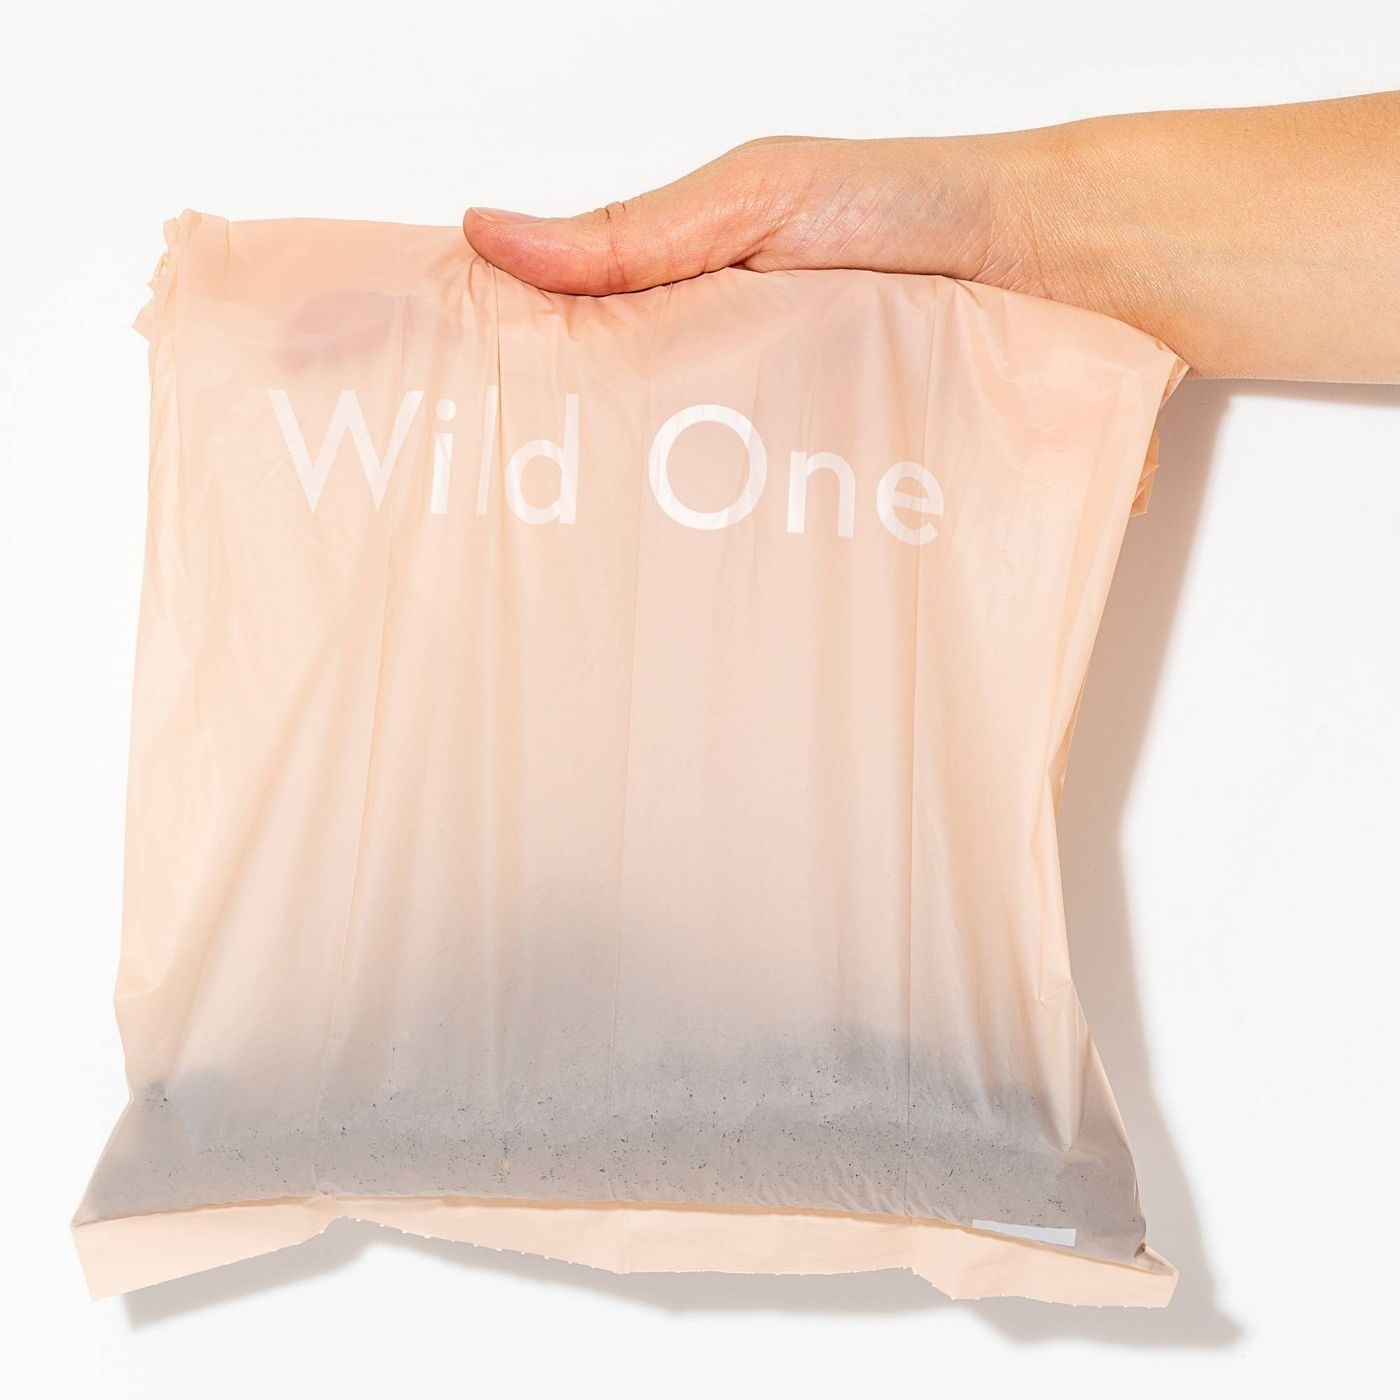 Pink bag that says Wild One on it